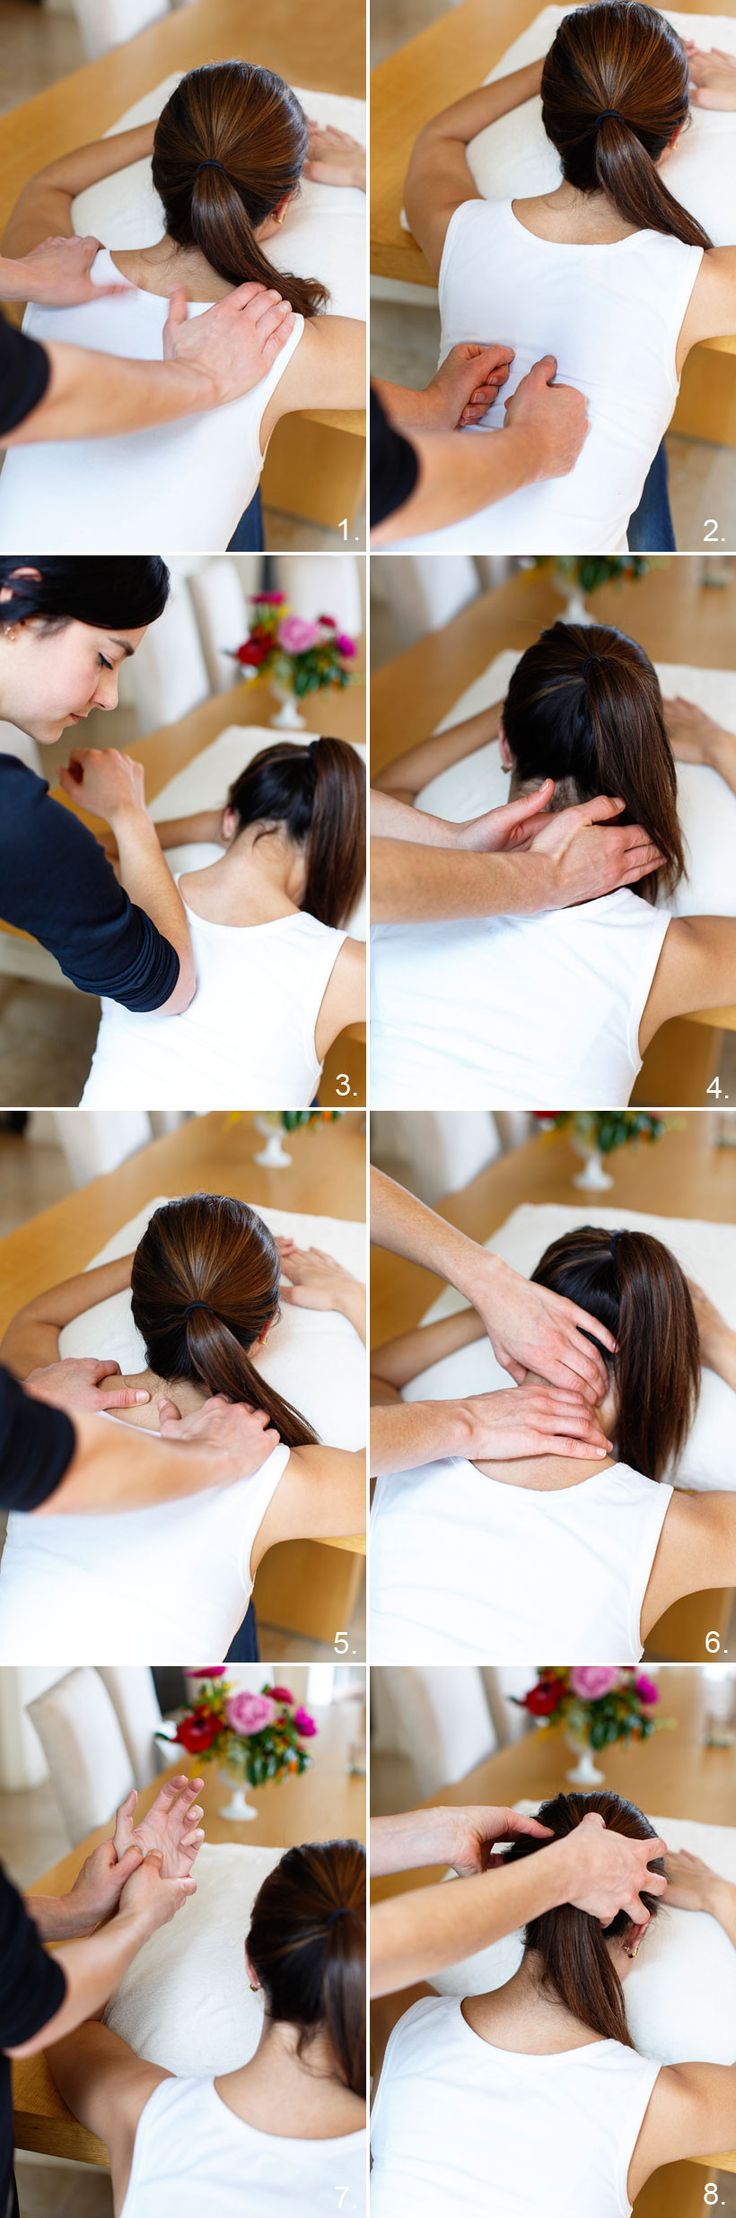 How to give a great massage in 8 steps | Come to Fulcher's Therapeutic Massage in Imlay City, MI and Lapeer, MI for all of your massage needs! Call (810) 724-0996 or (810) 664-8852 respectively for more information or visit our website lapeermassage.com!